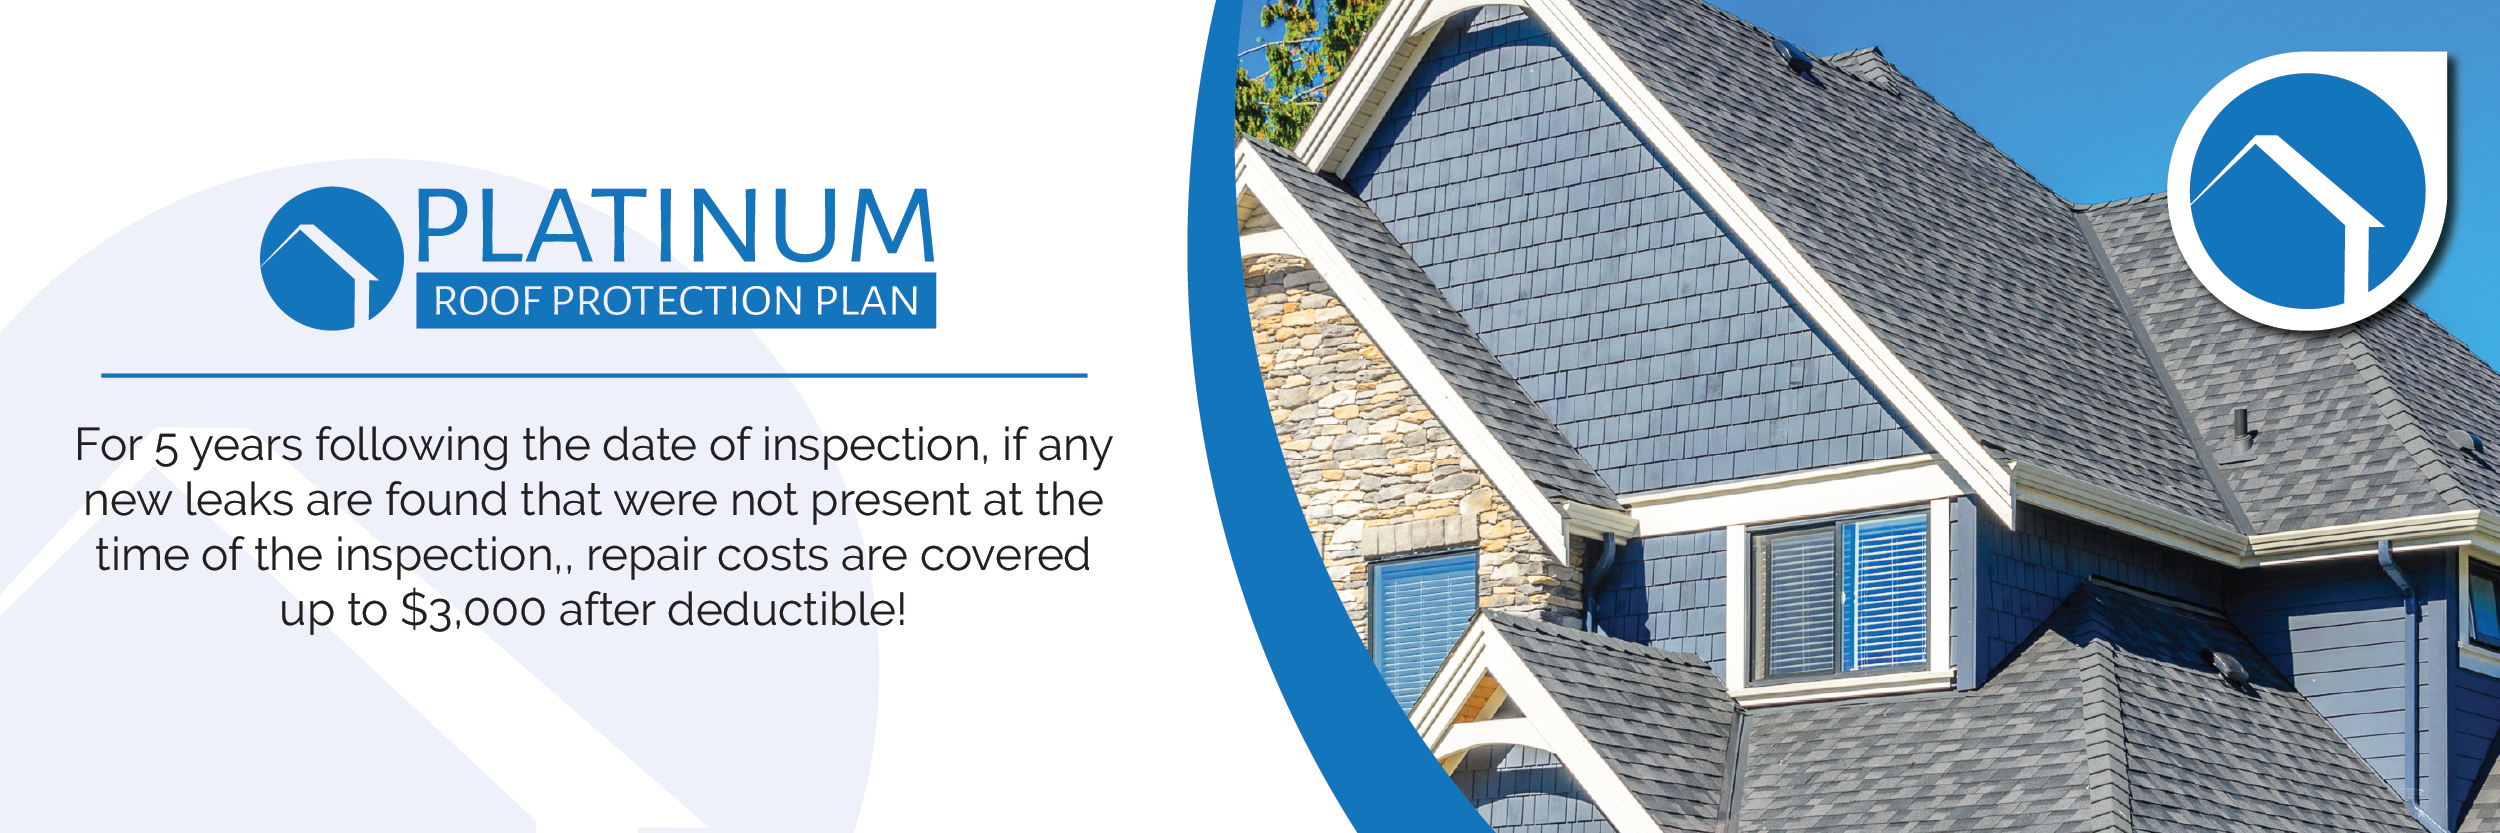 San Diego Real Estate Inspections Platinum Roof